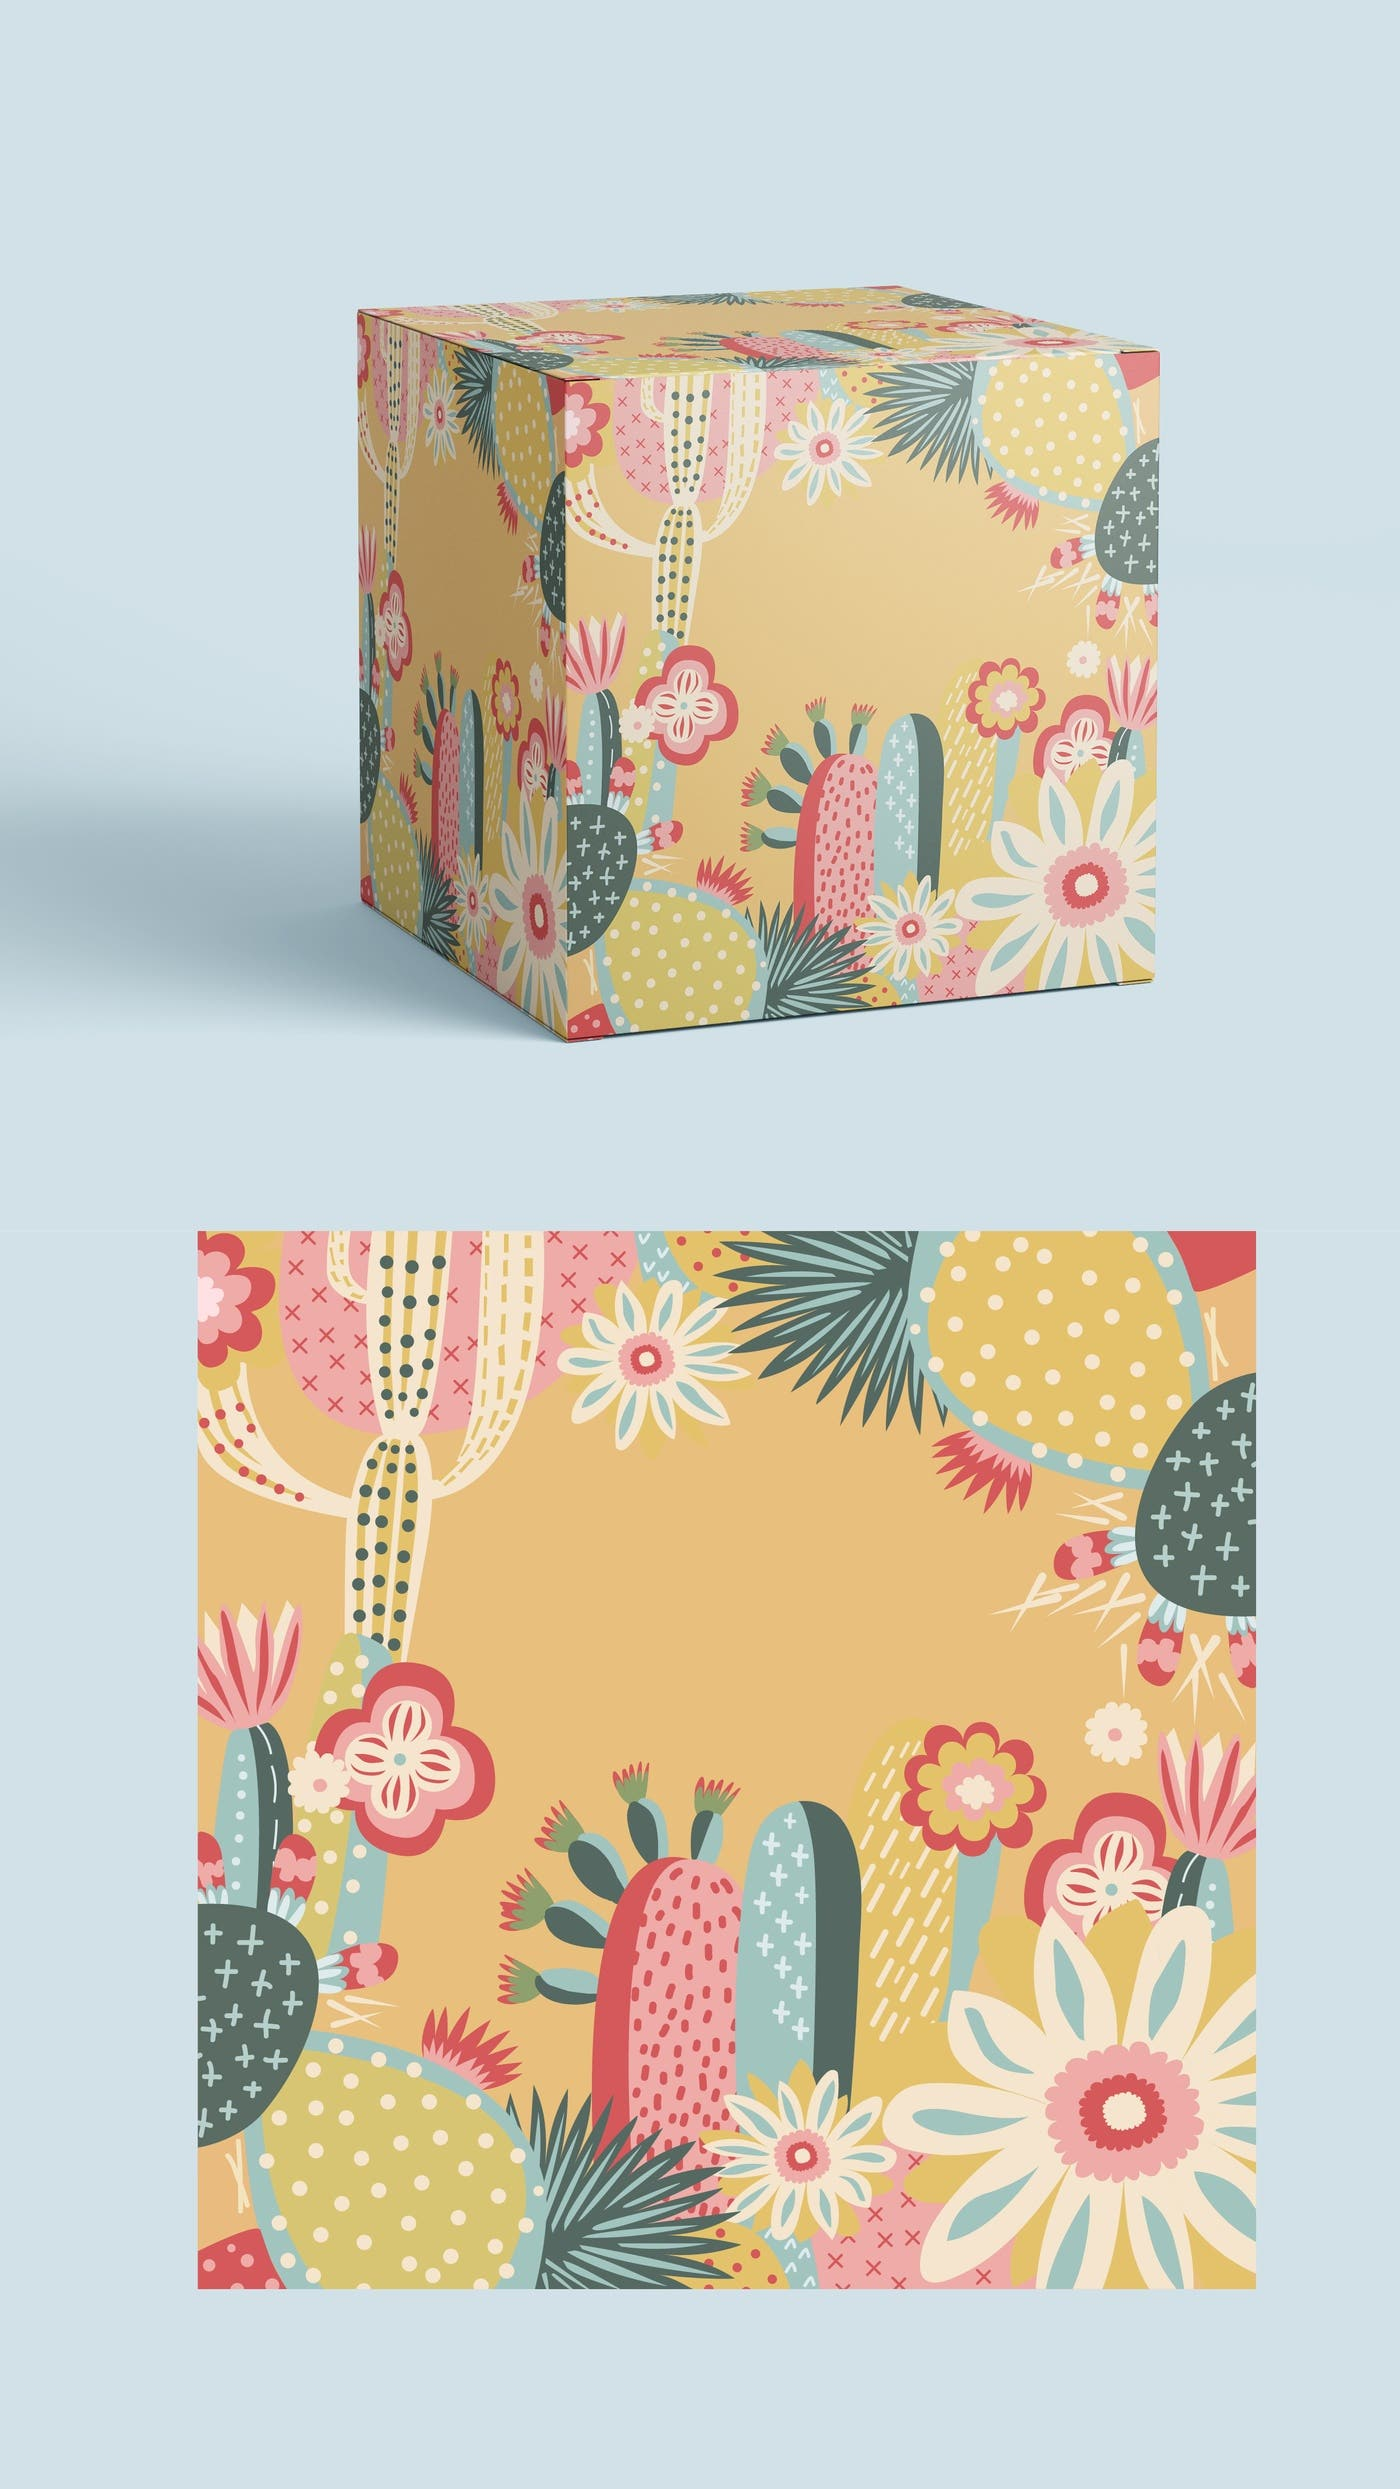 box-design-for-plant.jpg